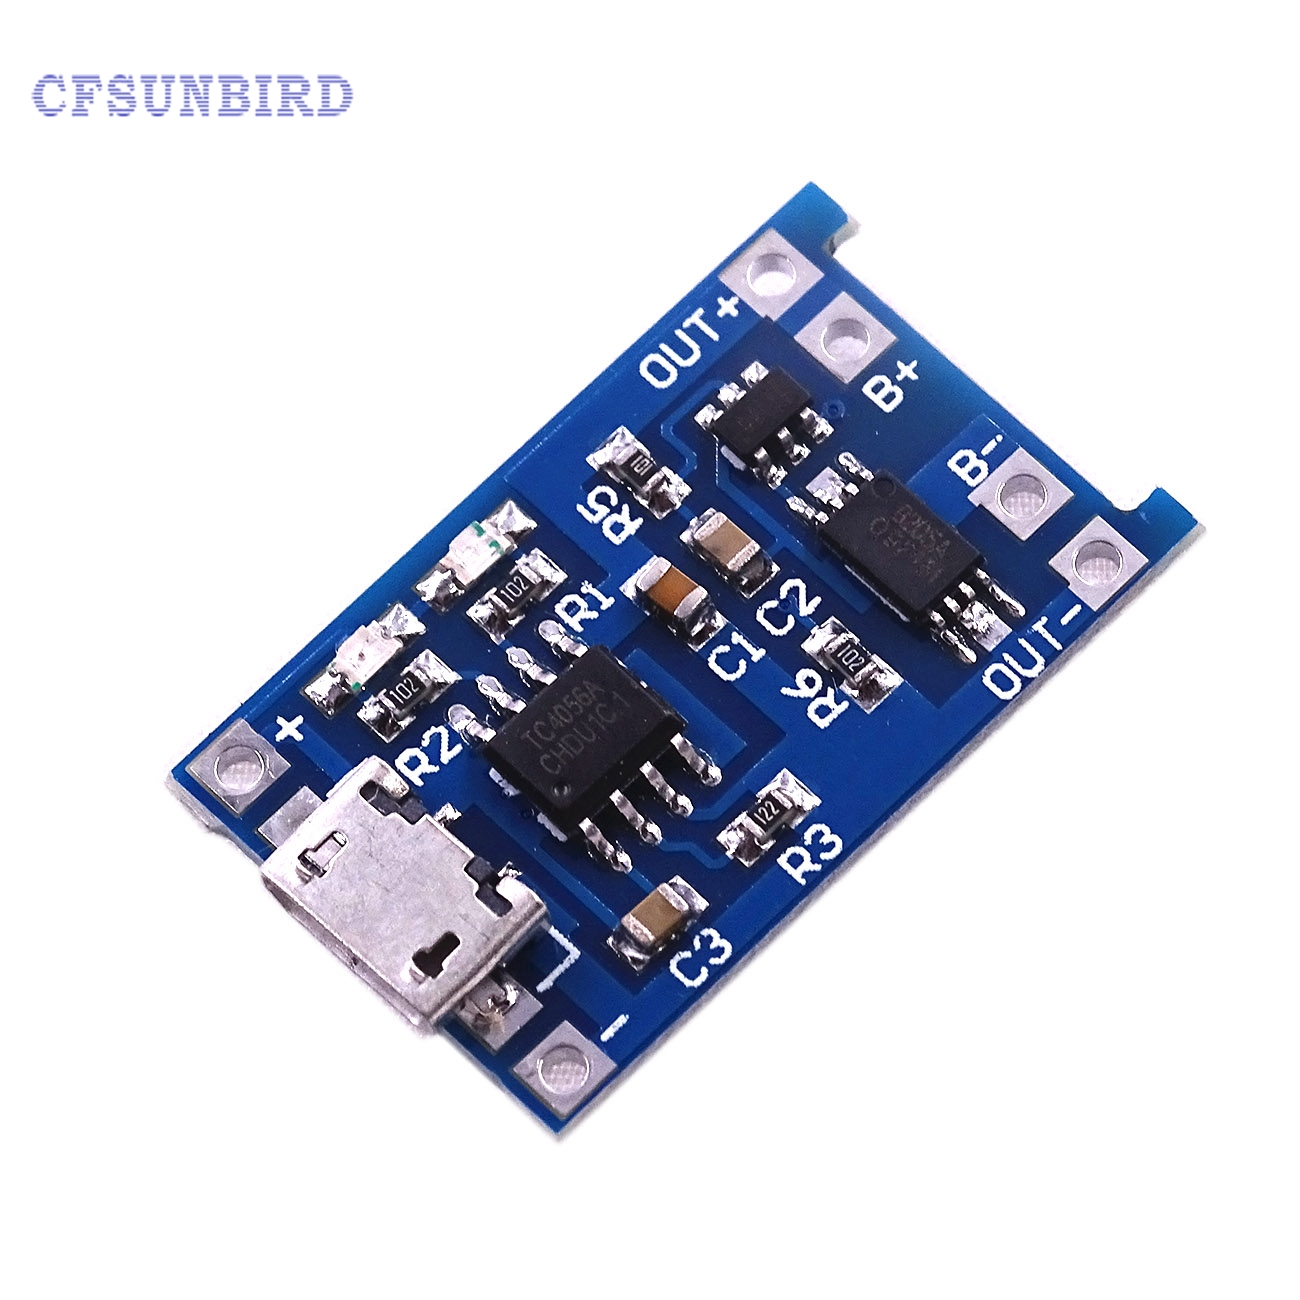 100pcs  Micro USB 5V 1A 18650 TP4056 Lithium Battery Charger Module Charging Board With Protection Dual Functions 12a 3s 18650 li ion lithium battery cell charger protection board pcb lithium polymer battery charging module